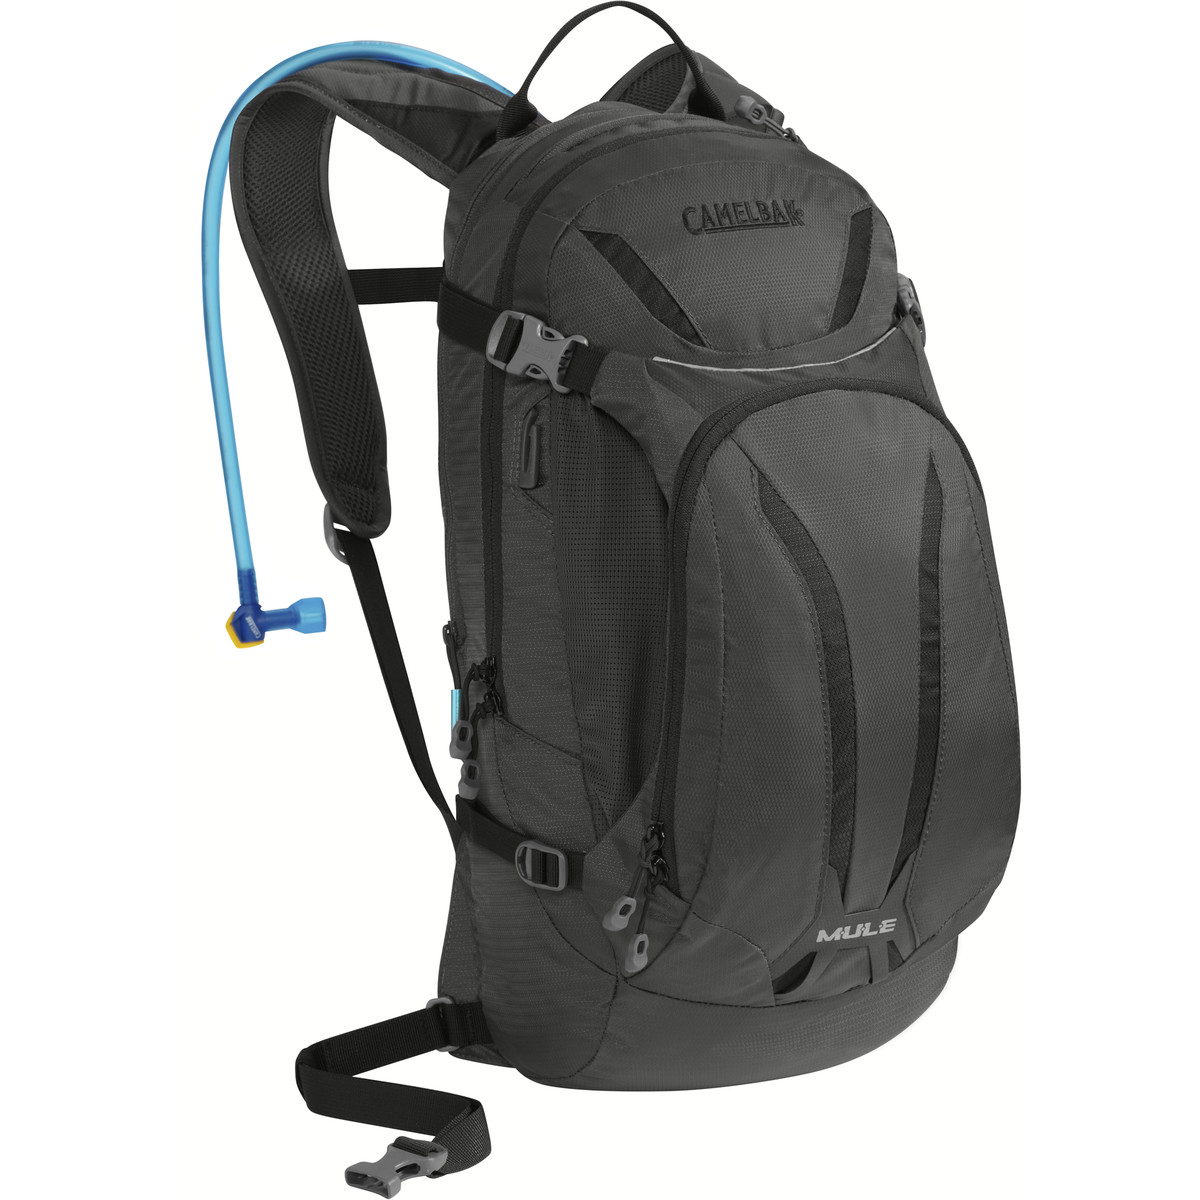 CamelBak M.U.L.E. 100 oz Hydration Pack Charcoal